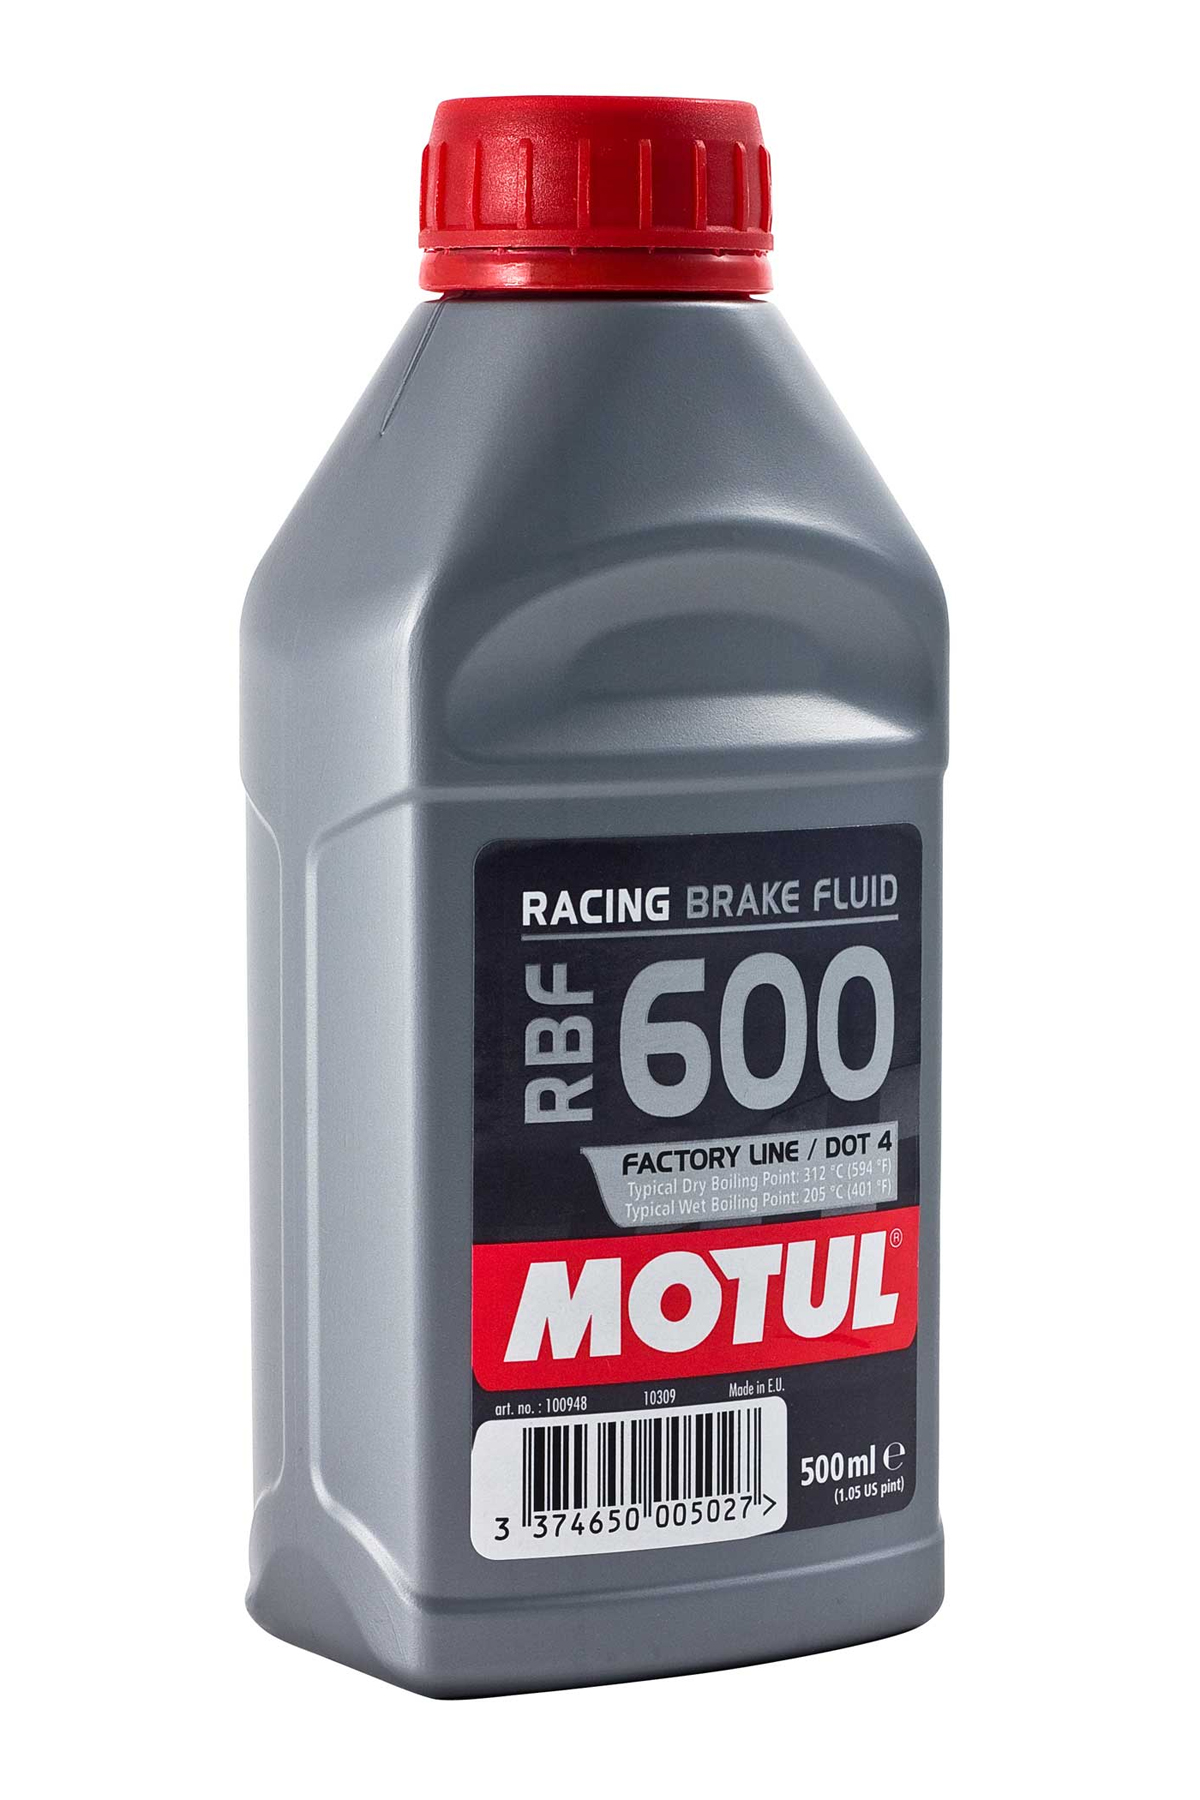 Rally Car Racing >> Motul RBF600 Racing Brake Fluid | Rallynuts